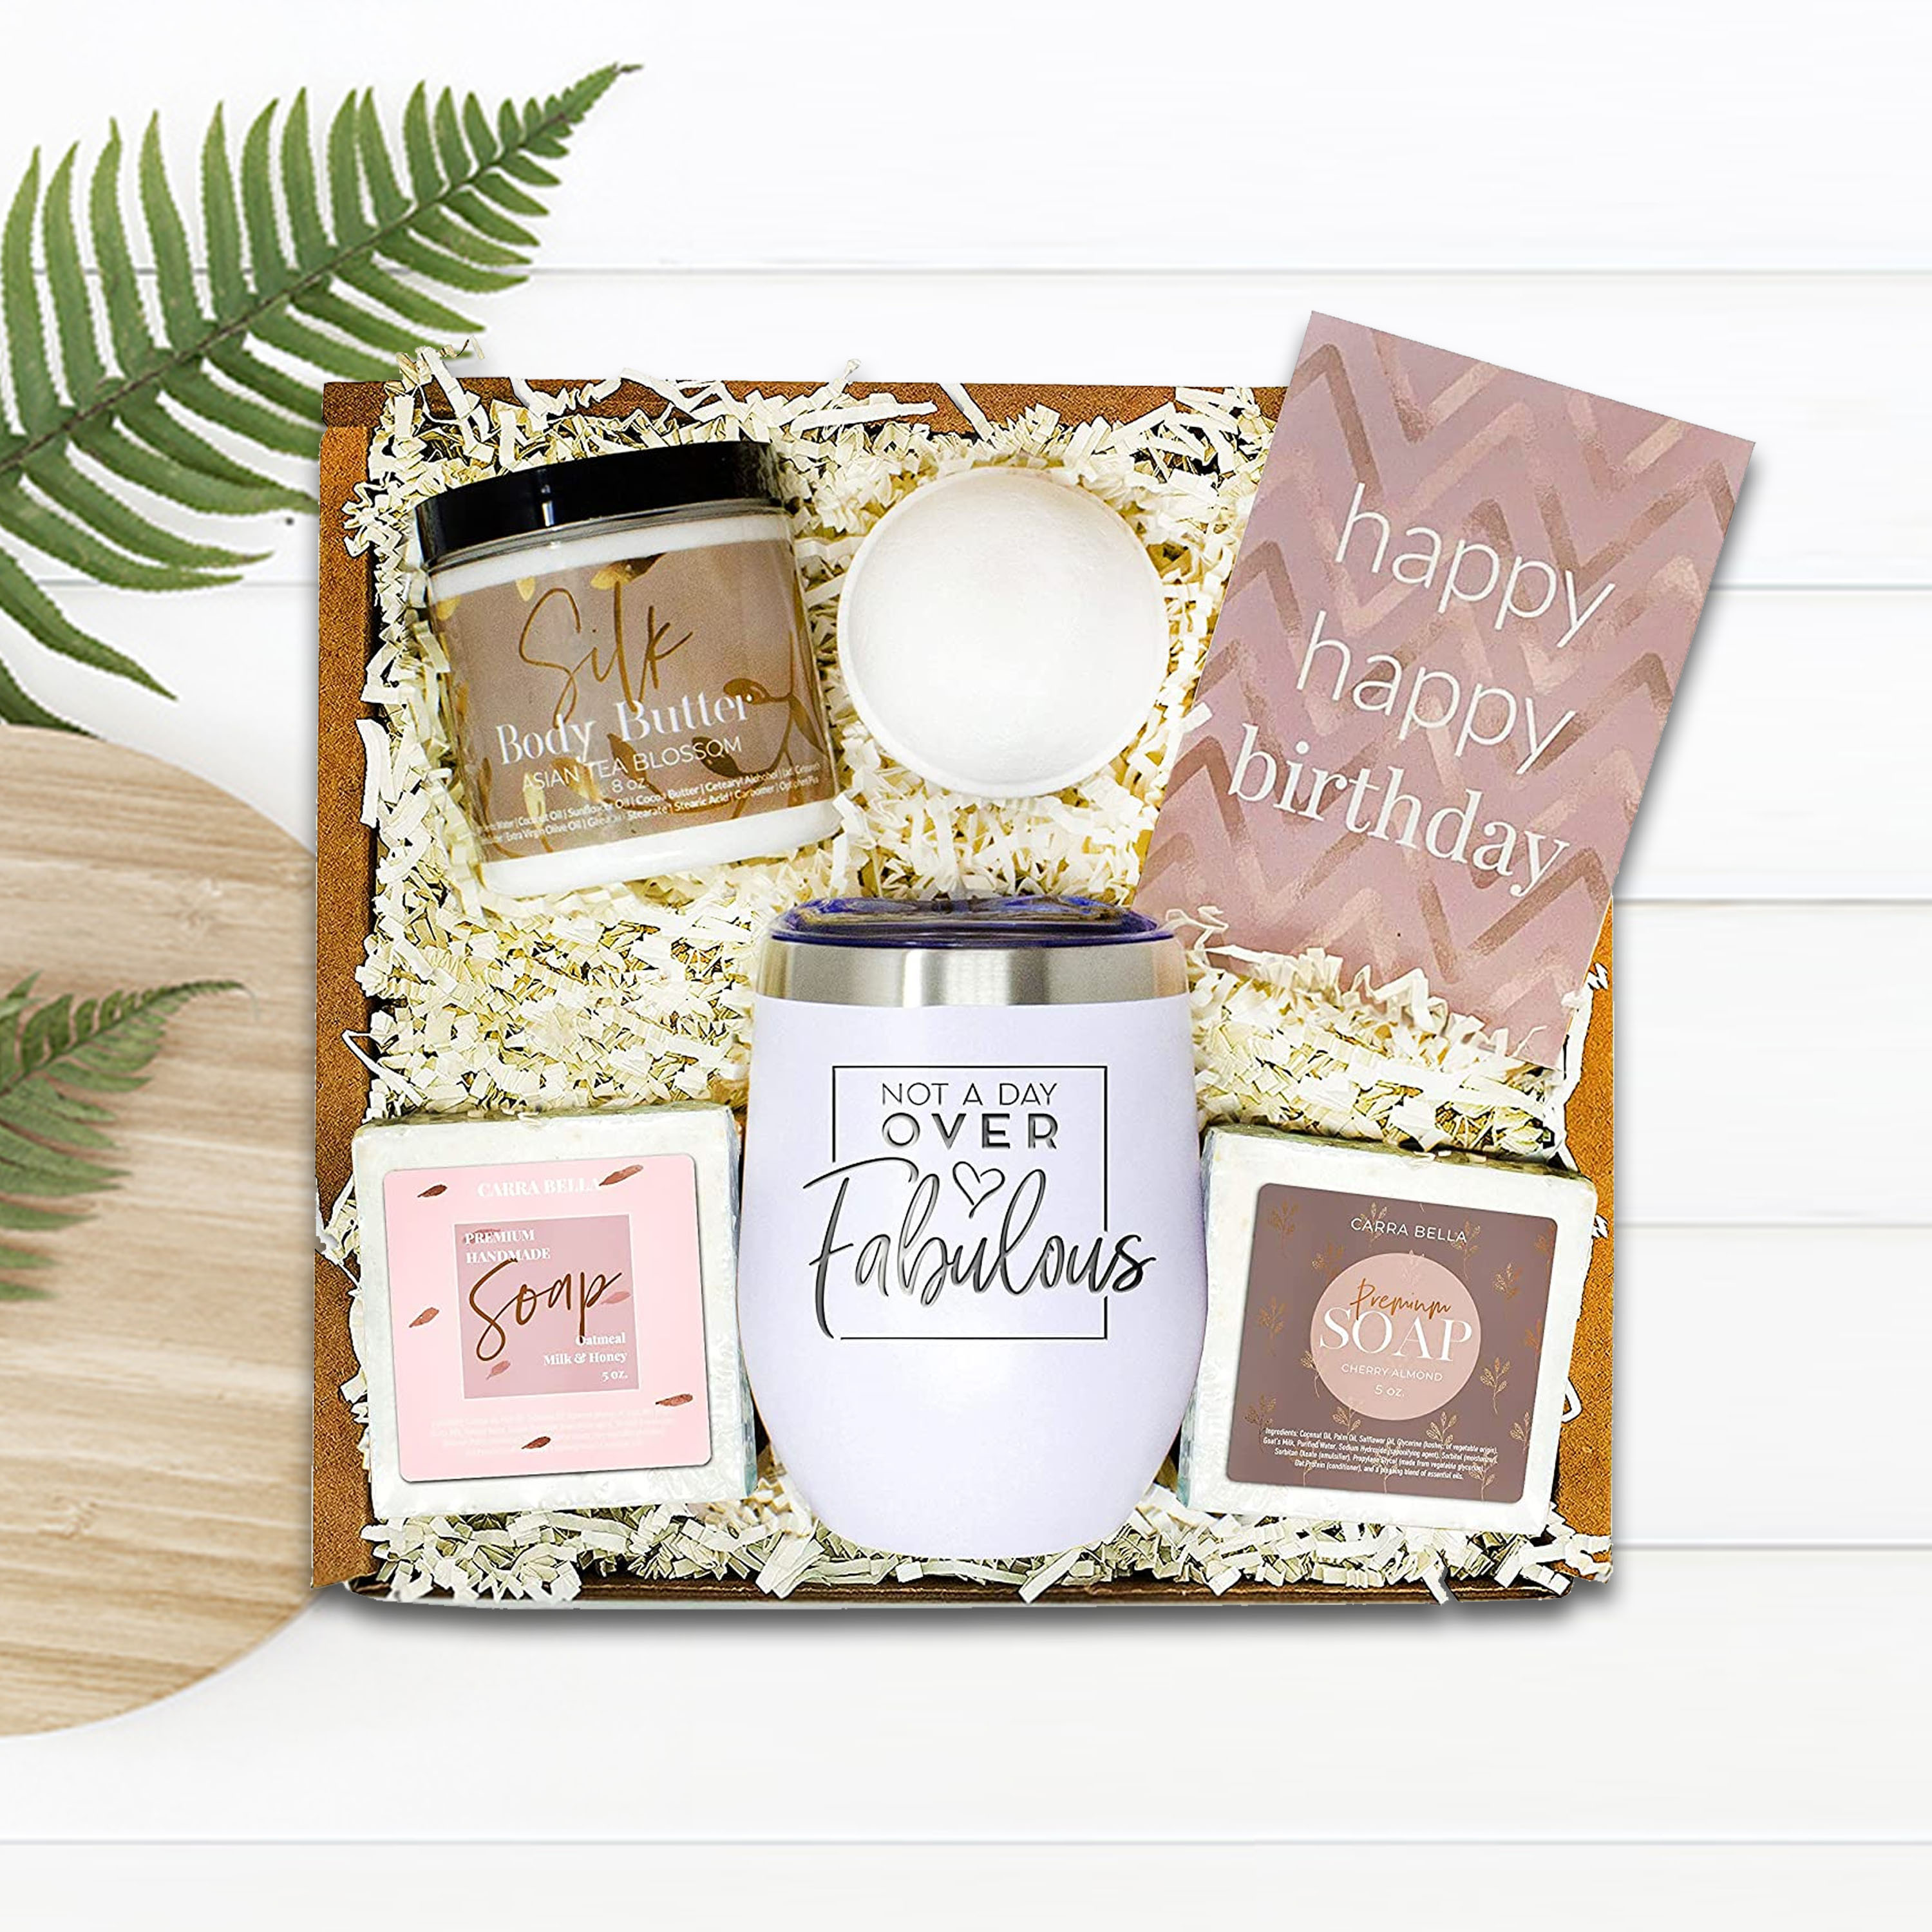 Sodilly' Thoughtful Gift Boxes Bring Curated Themes, Amusing Ways to Send Gifts to Loved Ones